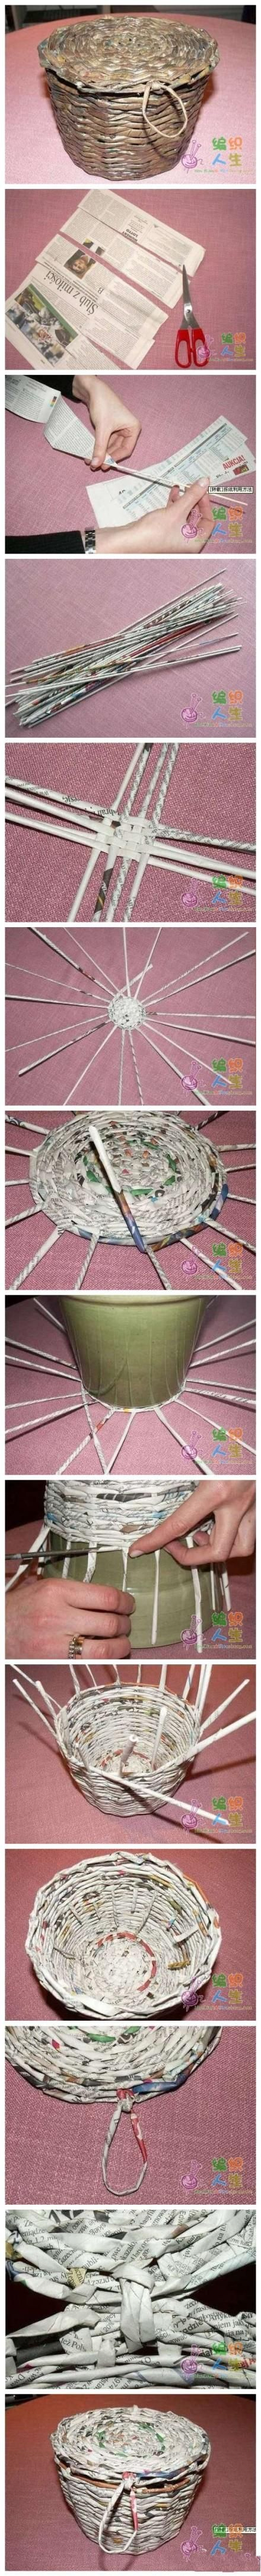 DIY newspaper basket making